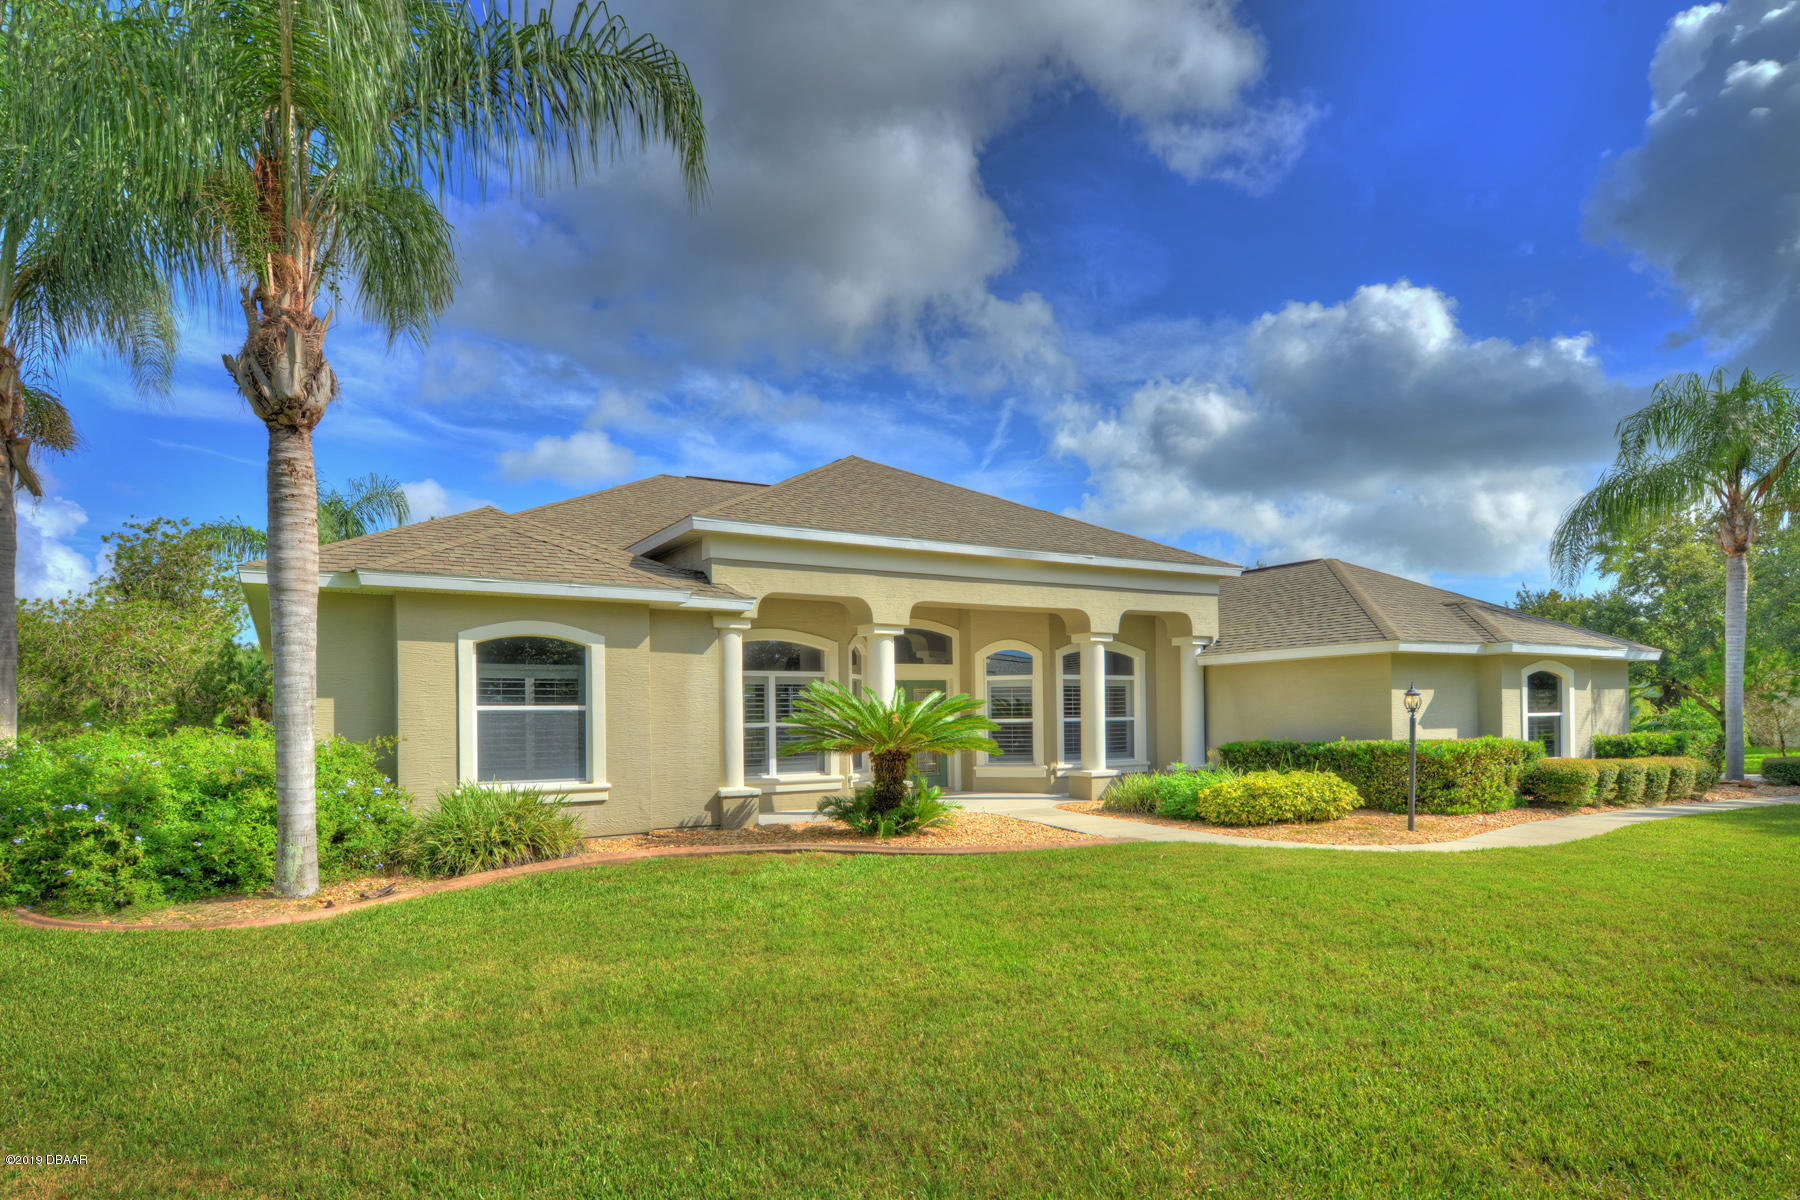 5950 Raleigh Barrows Court, Ponce Inlet, Florida